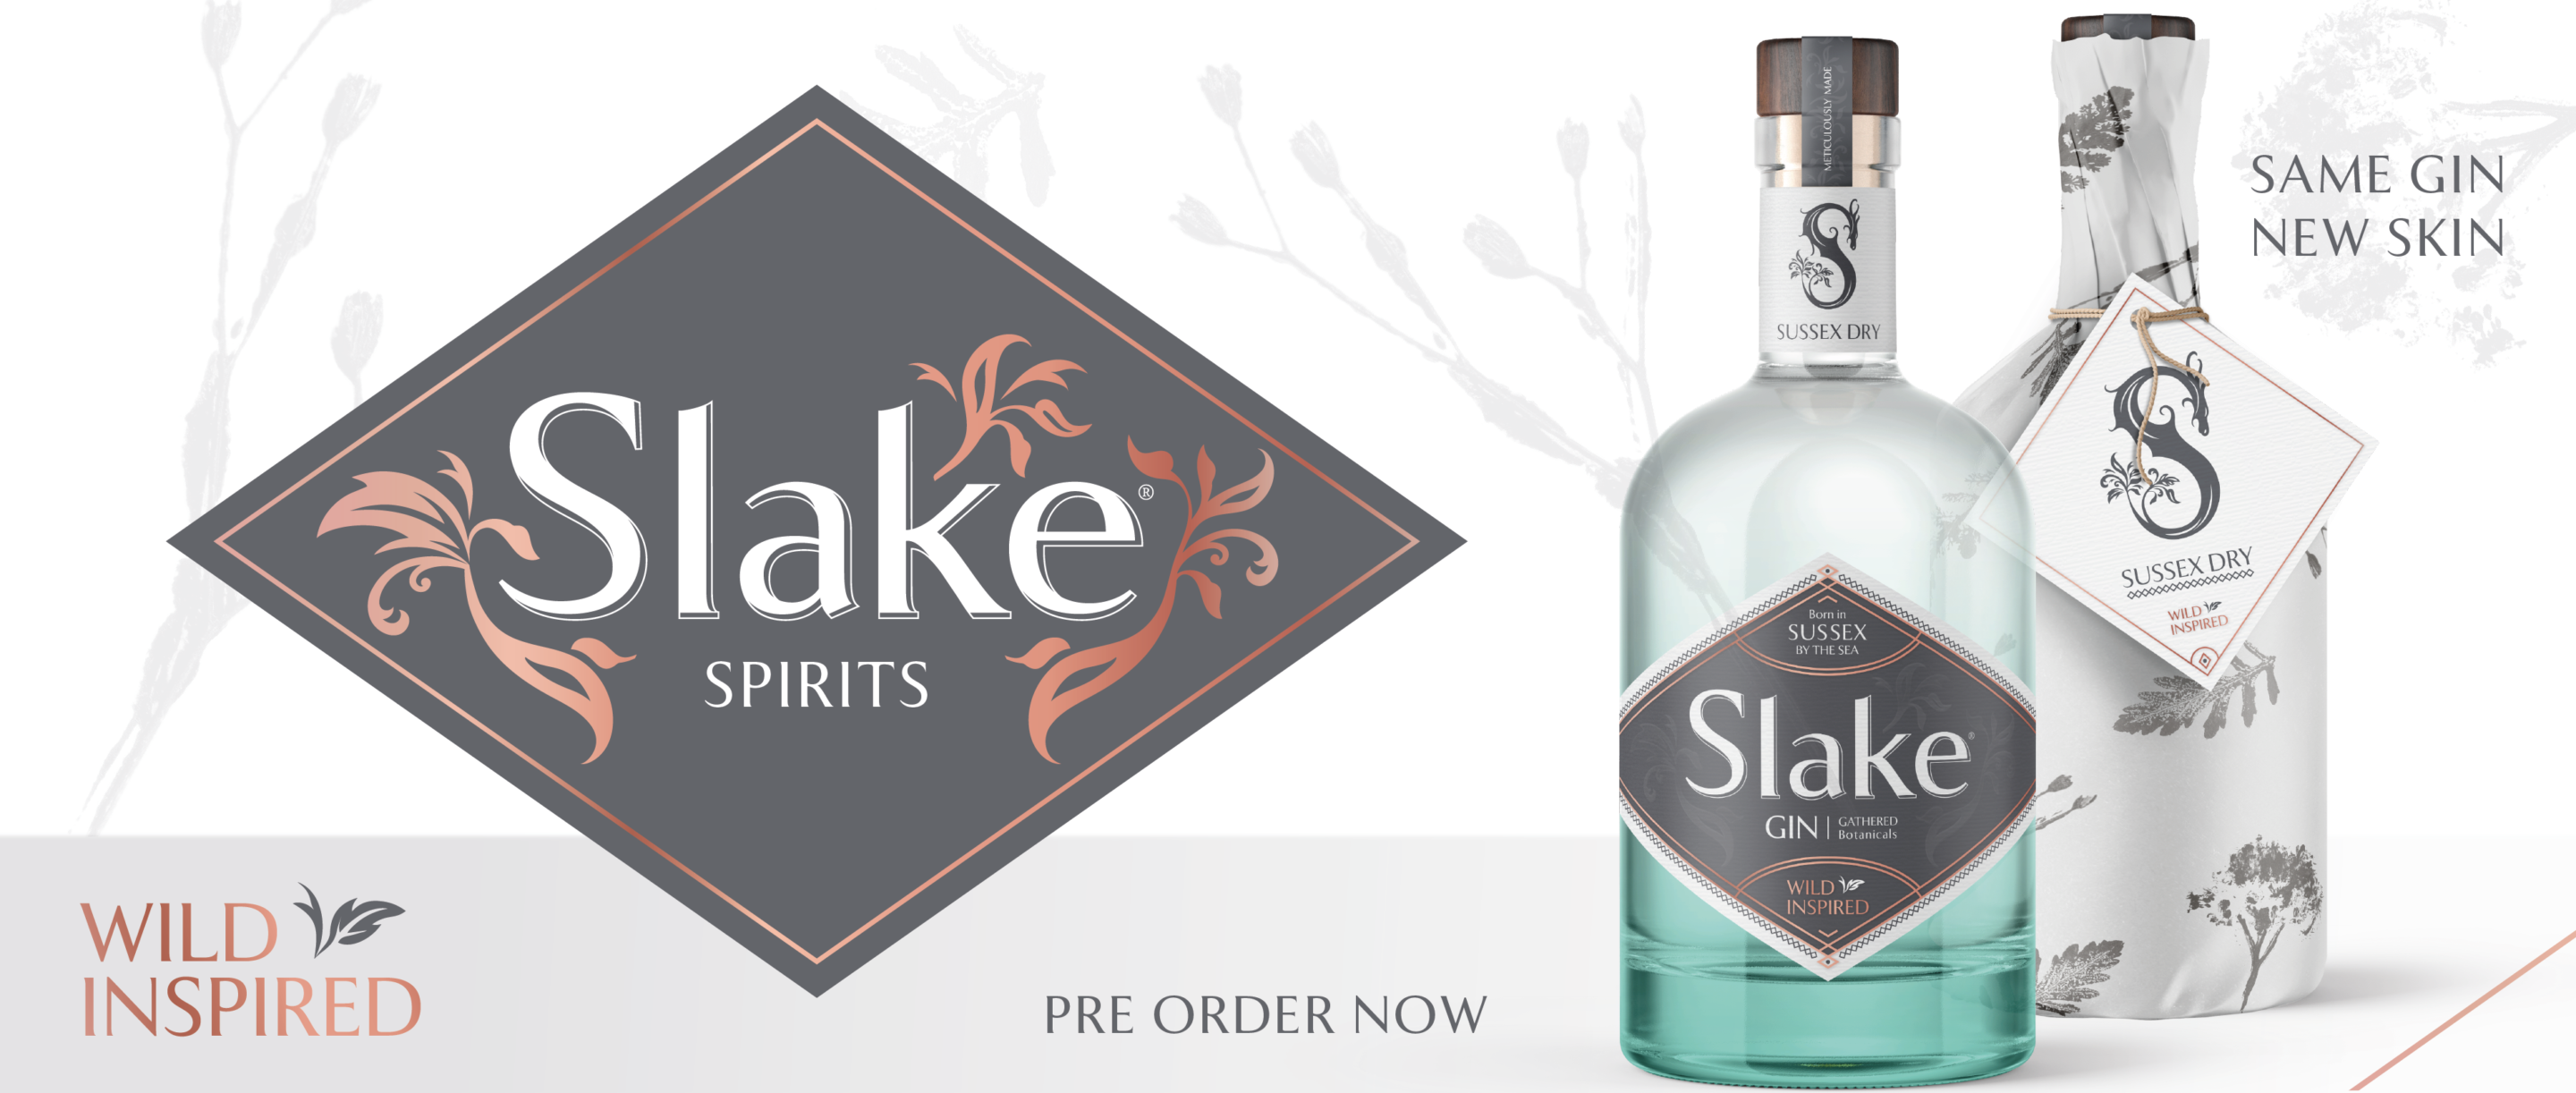 Slake Spirits Logo with bottle of Sussex Dry Gin in mezzo bianco green half recycled glass and wrapped with aromatic botanical print